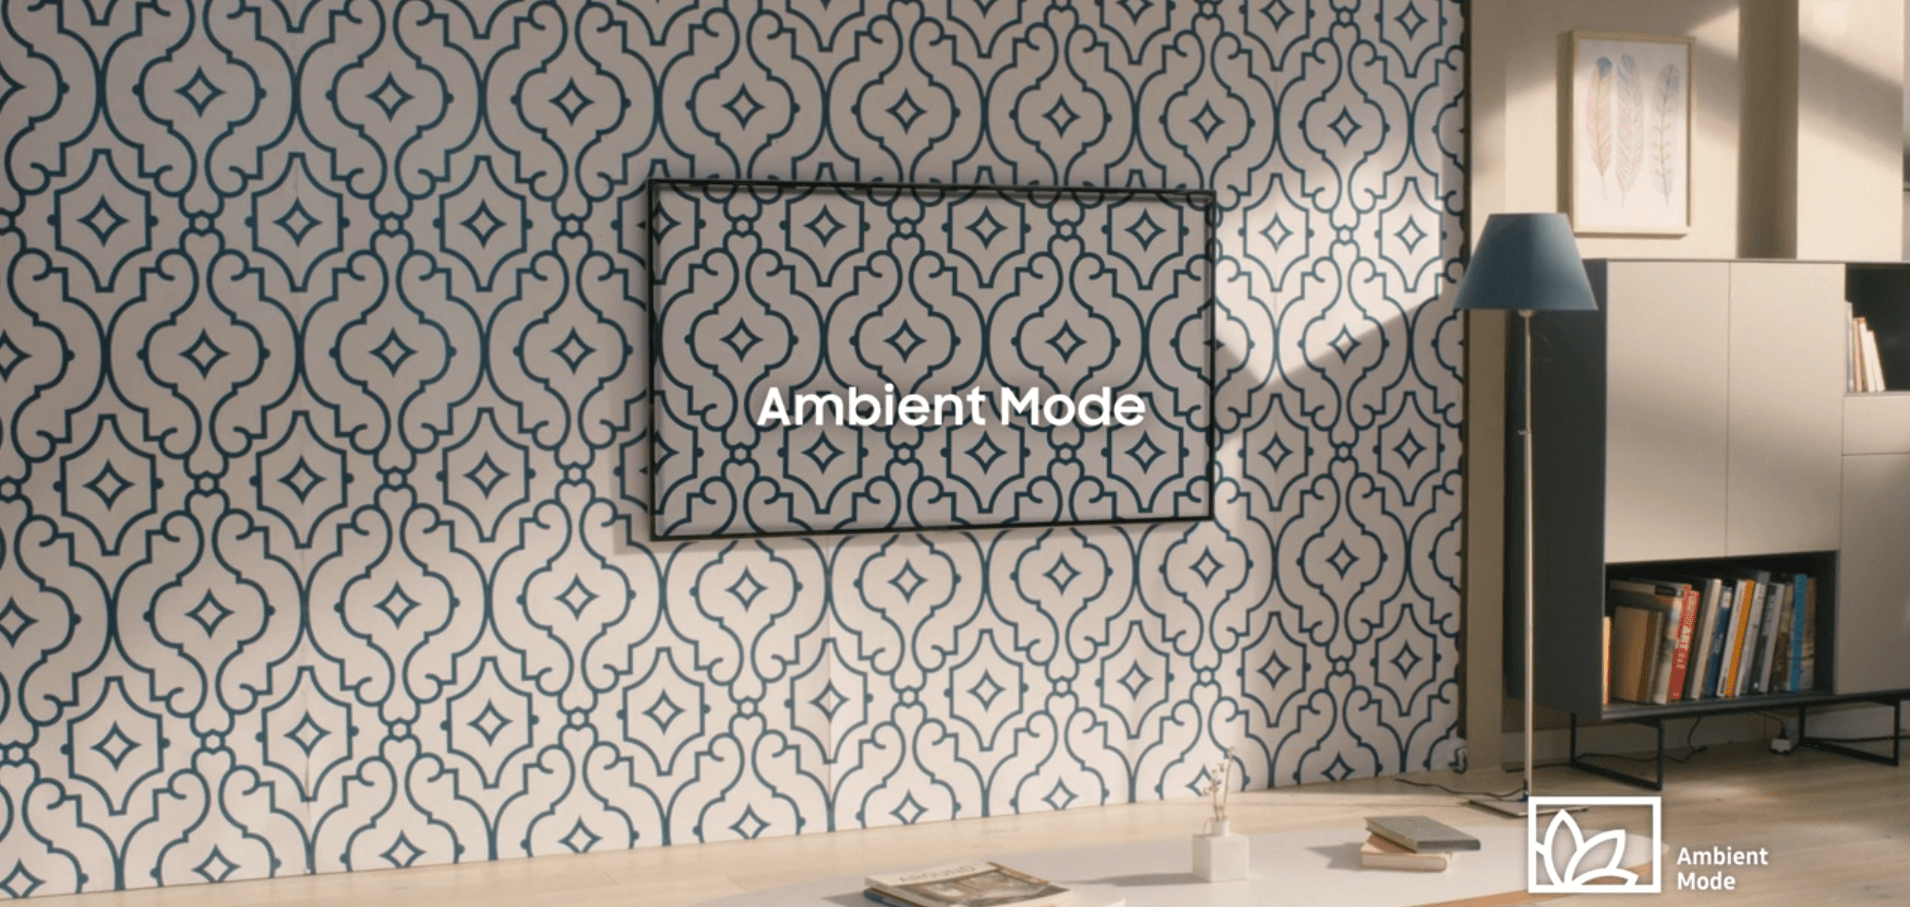 Ambient Mode QLED